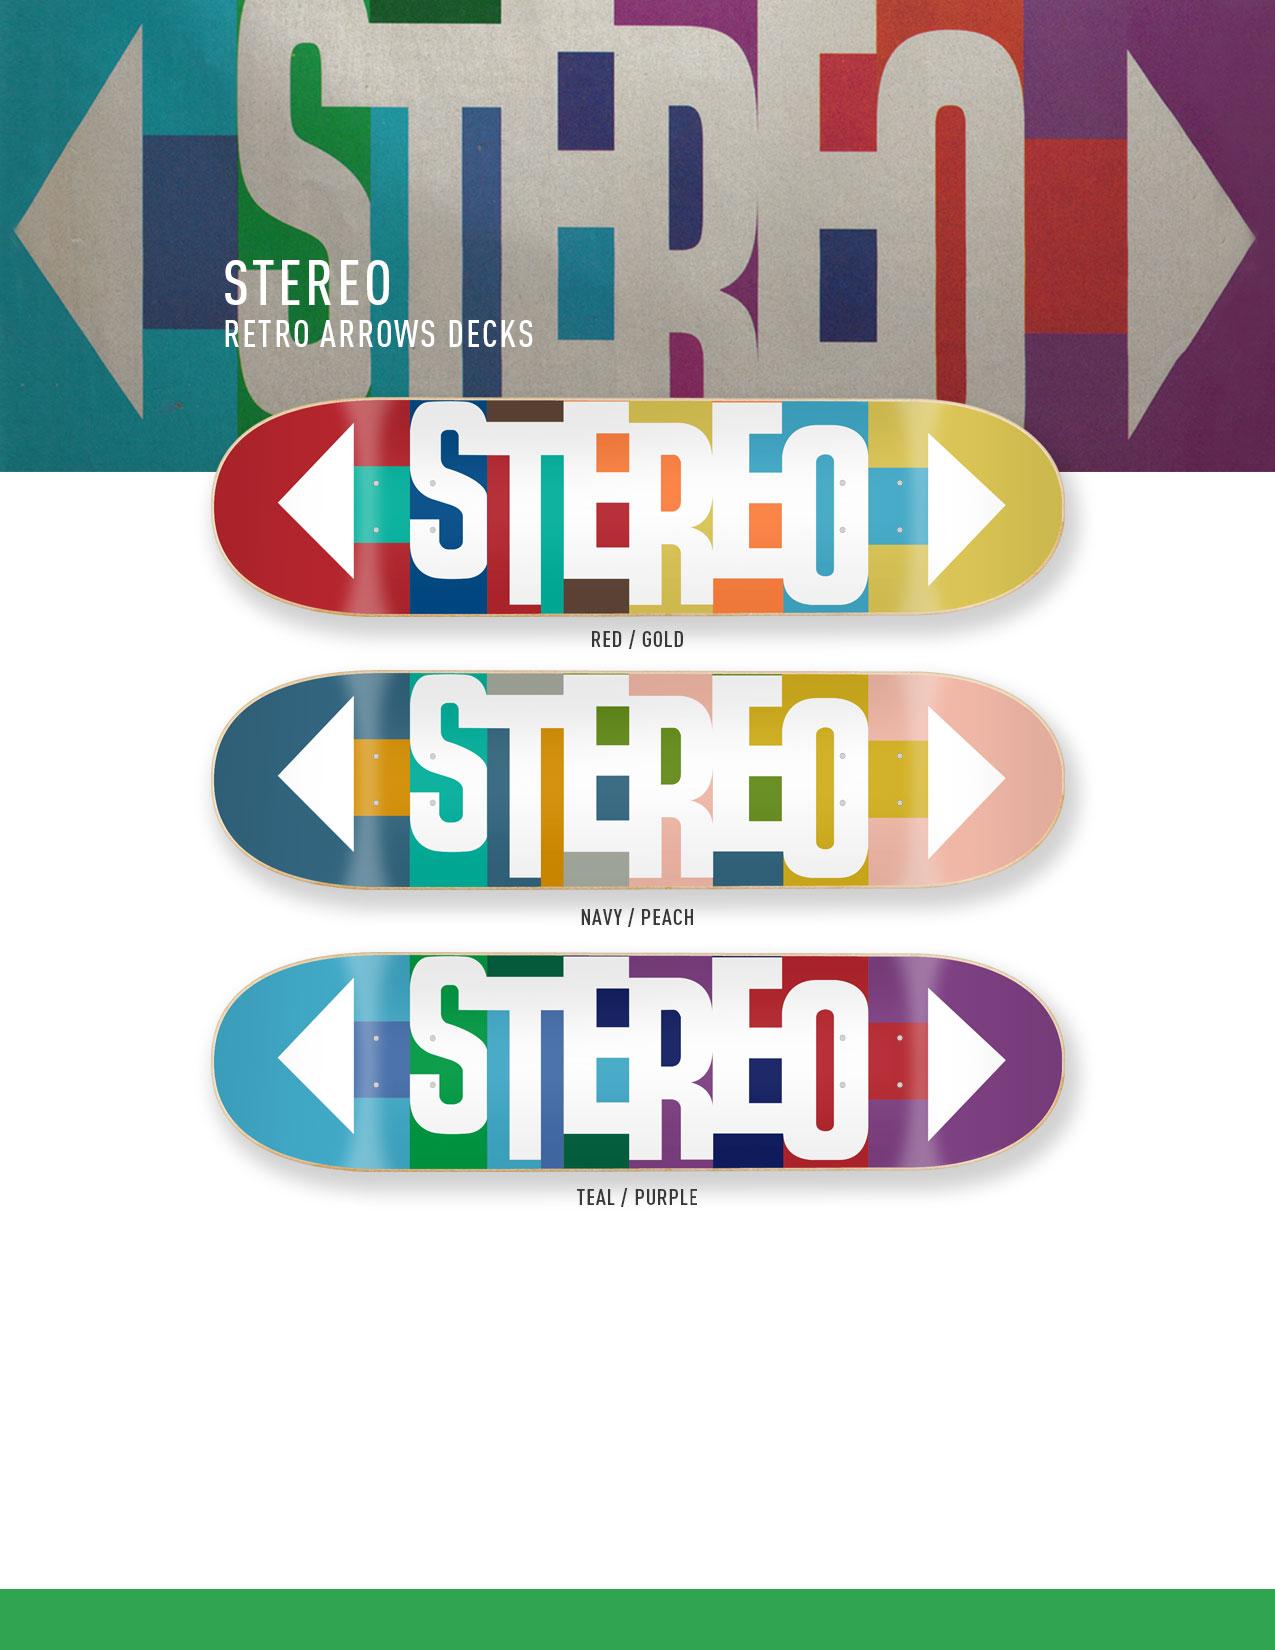 2017-stereo-retro-arrows.jpg